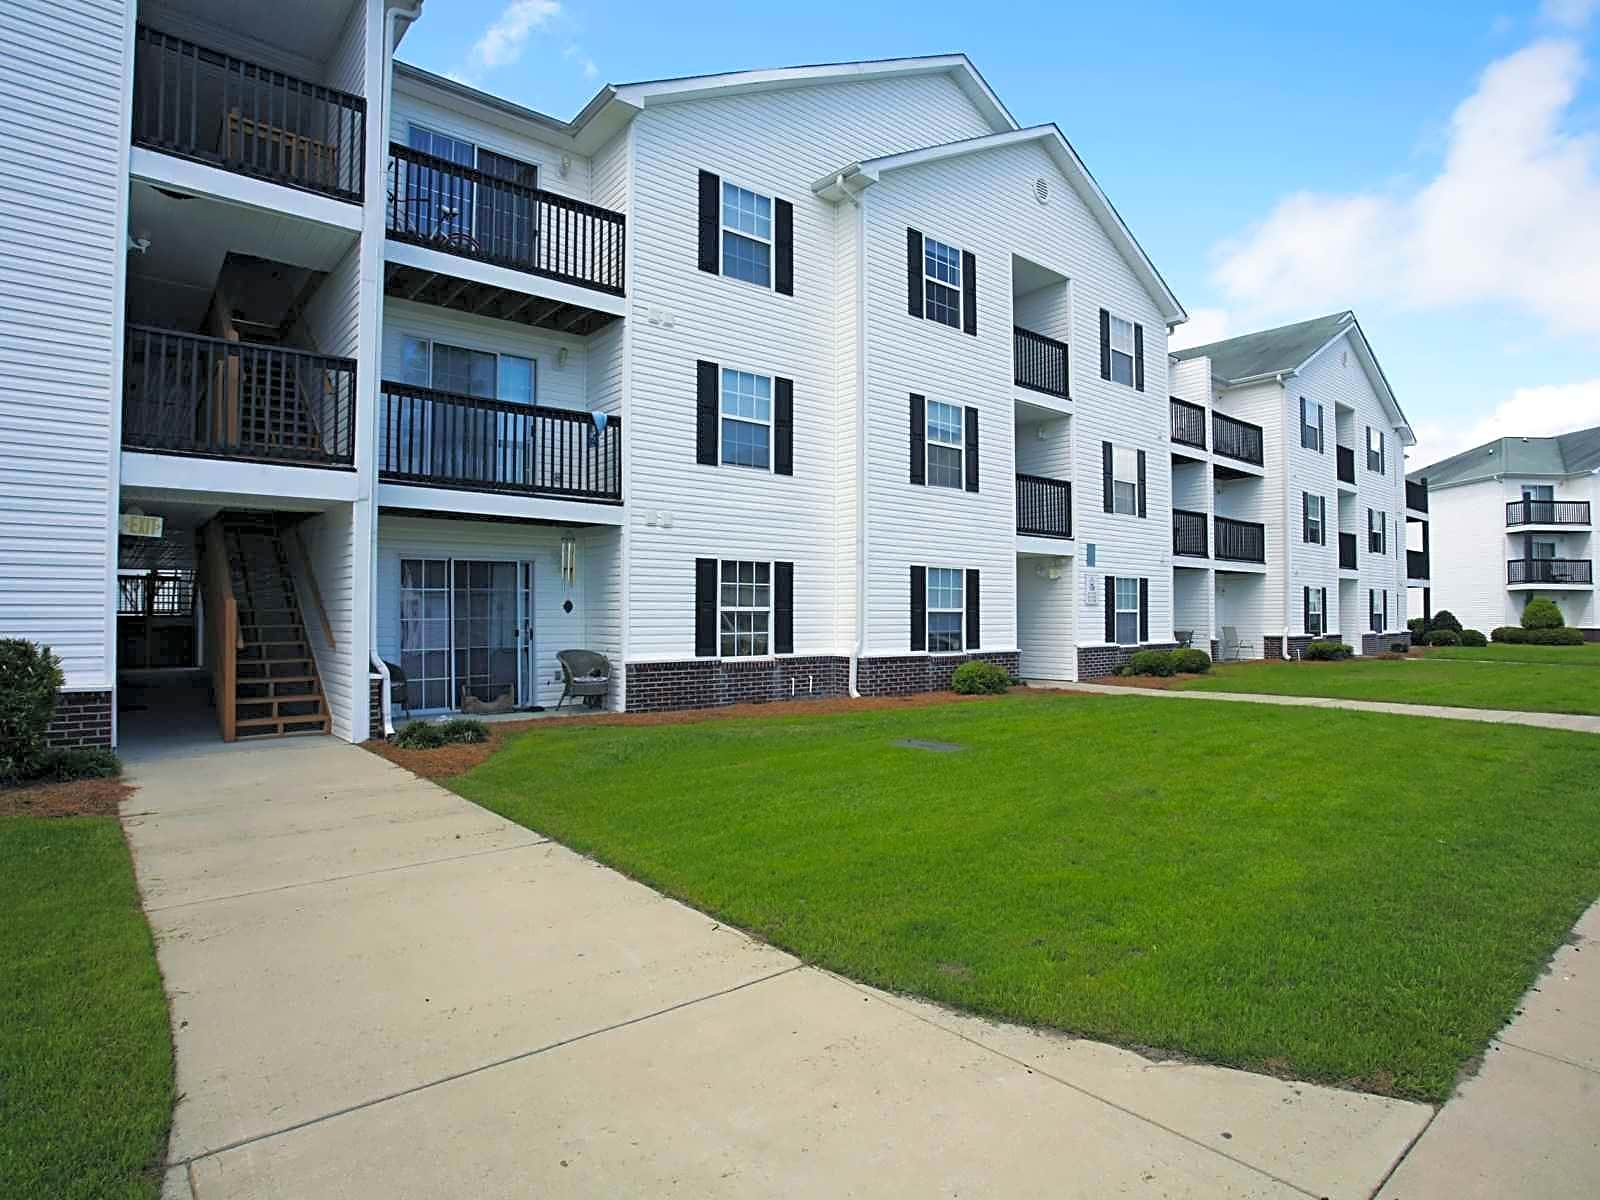 Photo: Myrtle Beach Apartment for Rent - $678.00 / month; 1 Bd & 1 Ba